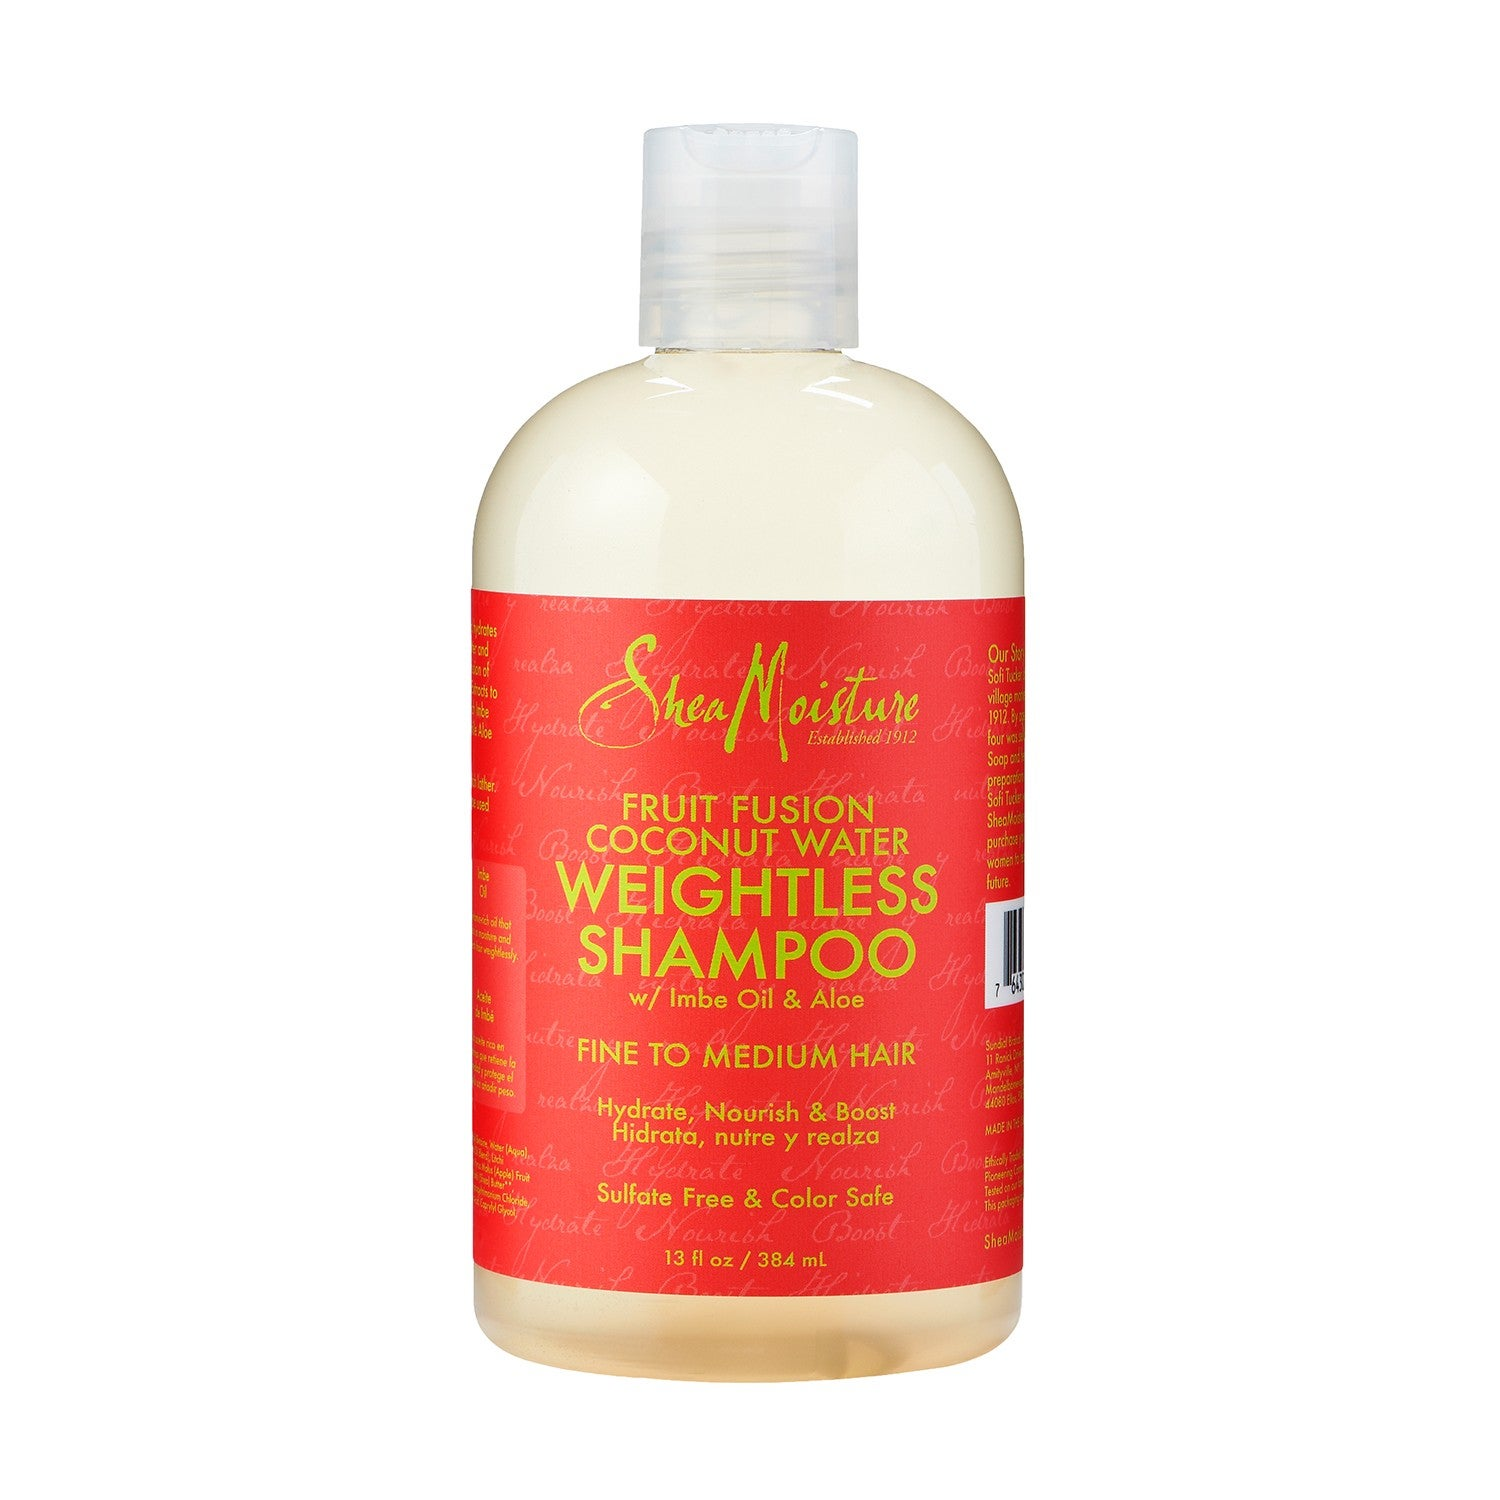 sheamoisture fruit fusion coconut water weightless shampoo